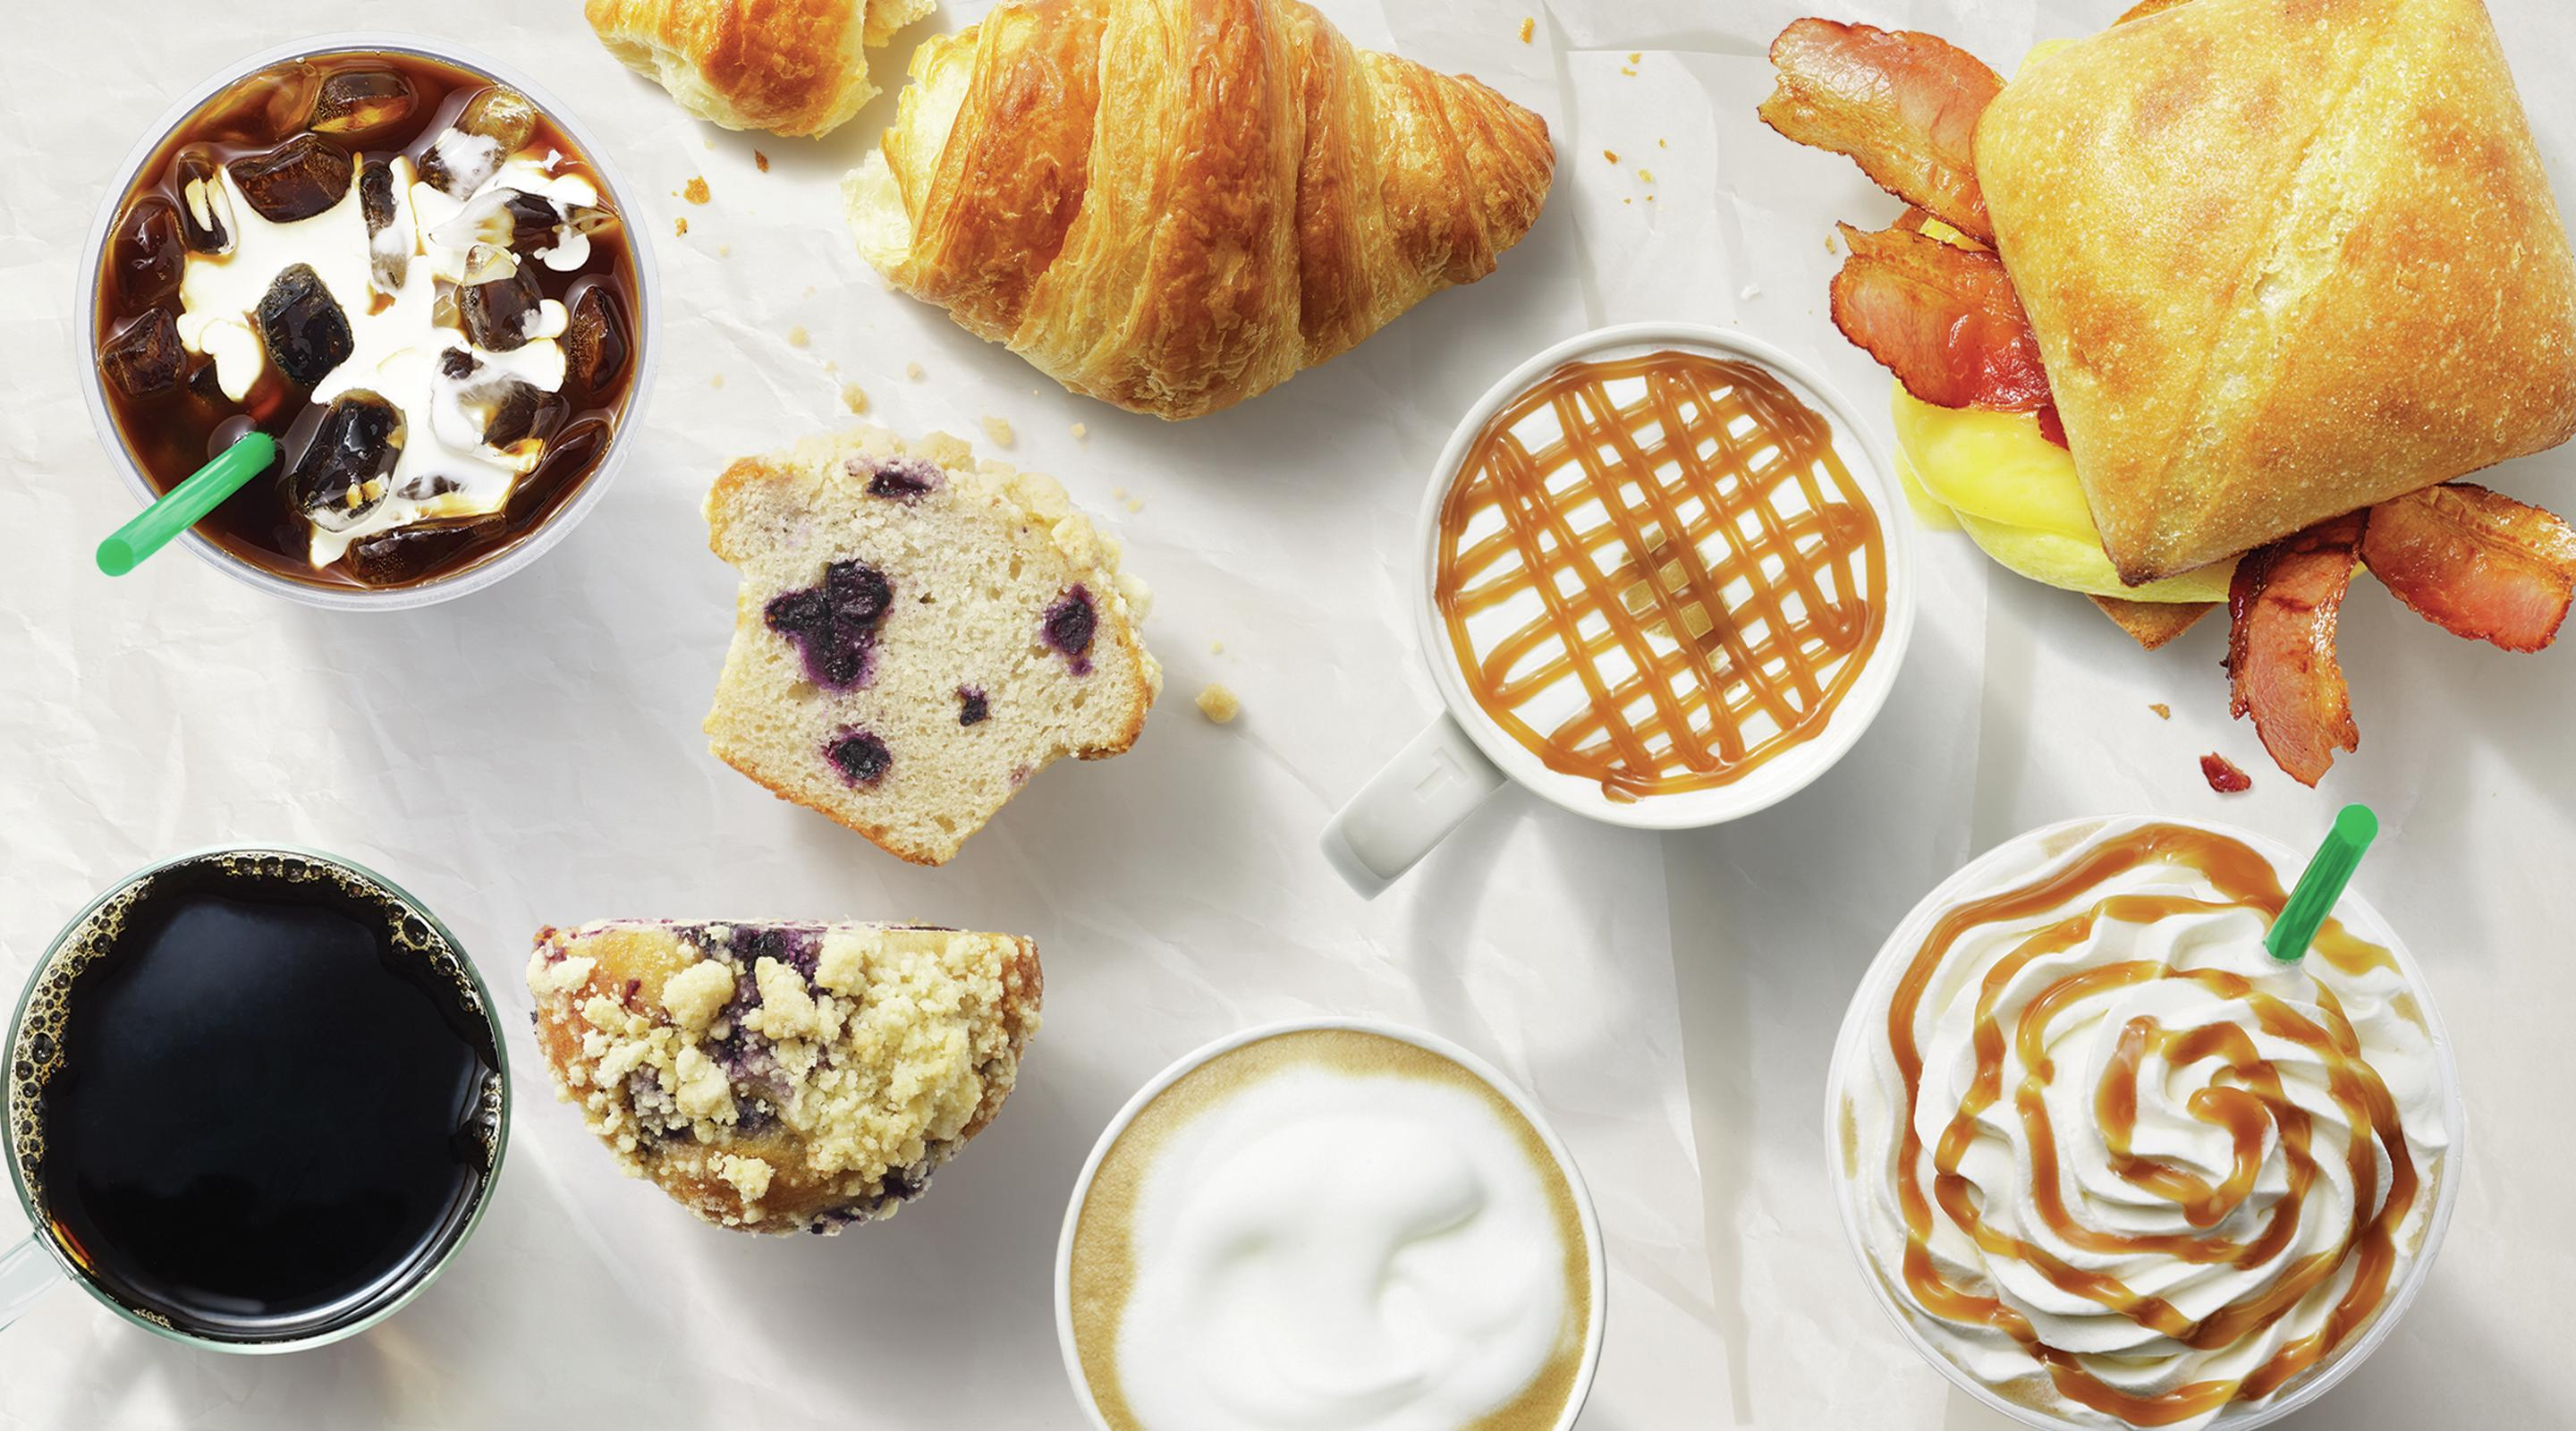 Starbucks offers handcrafted coffee beverages, premium teas and delectable treats.